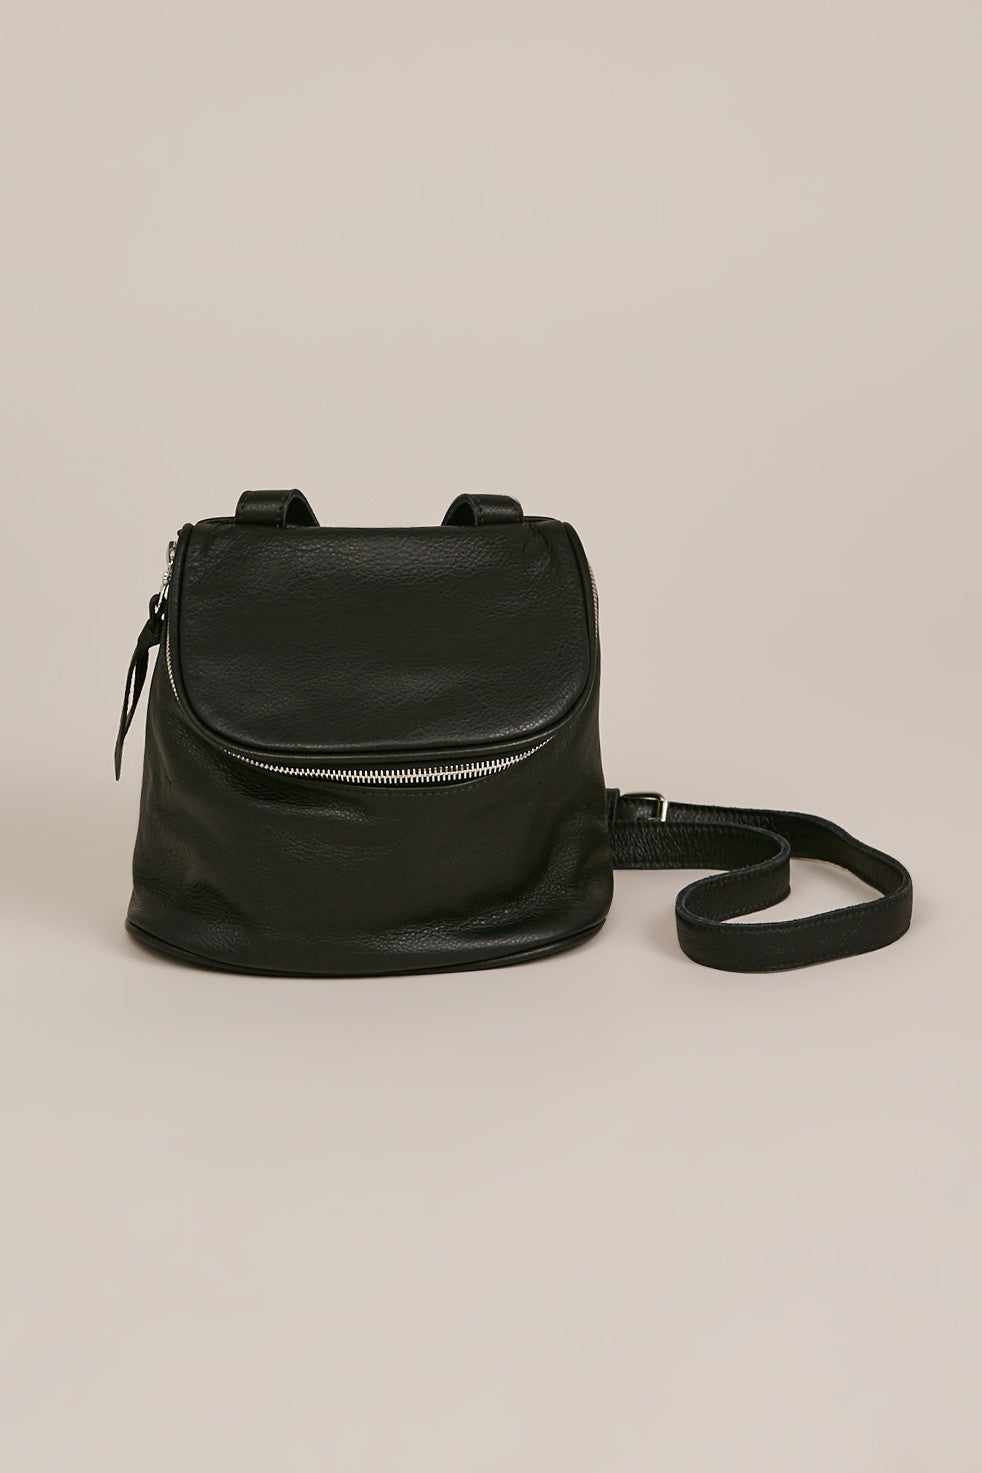 Camera Bag, Black - Clyde